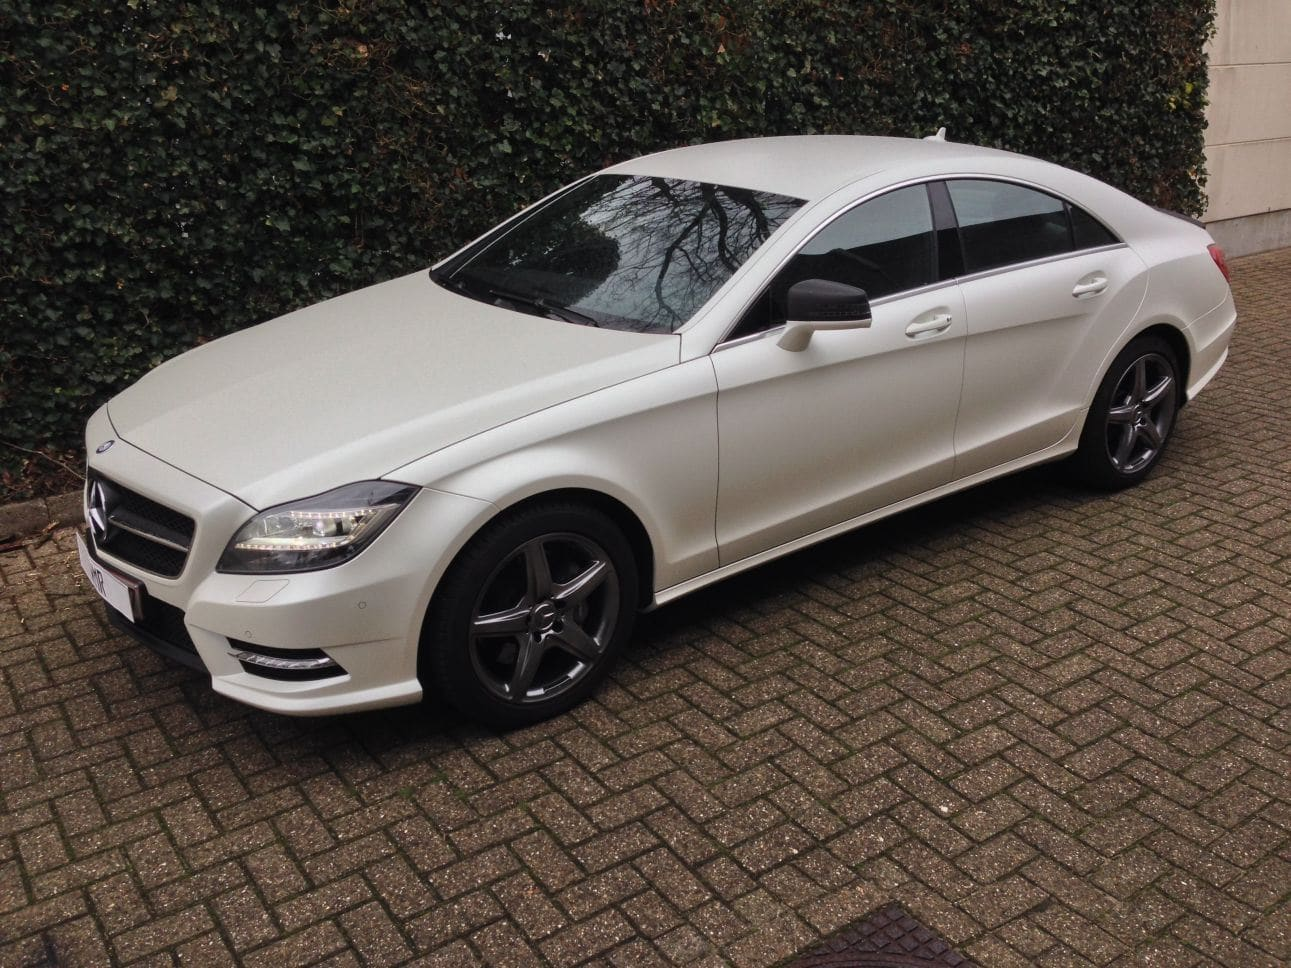 Mercedes CLS met White Satin Pearl Wrap, Carwrapping door Wrapmyride.nu Foto-nr:6208, ©2021